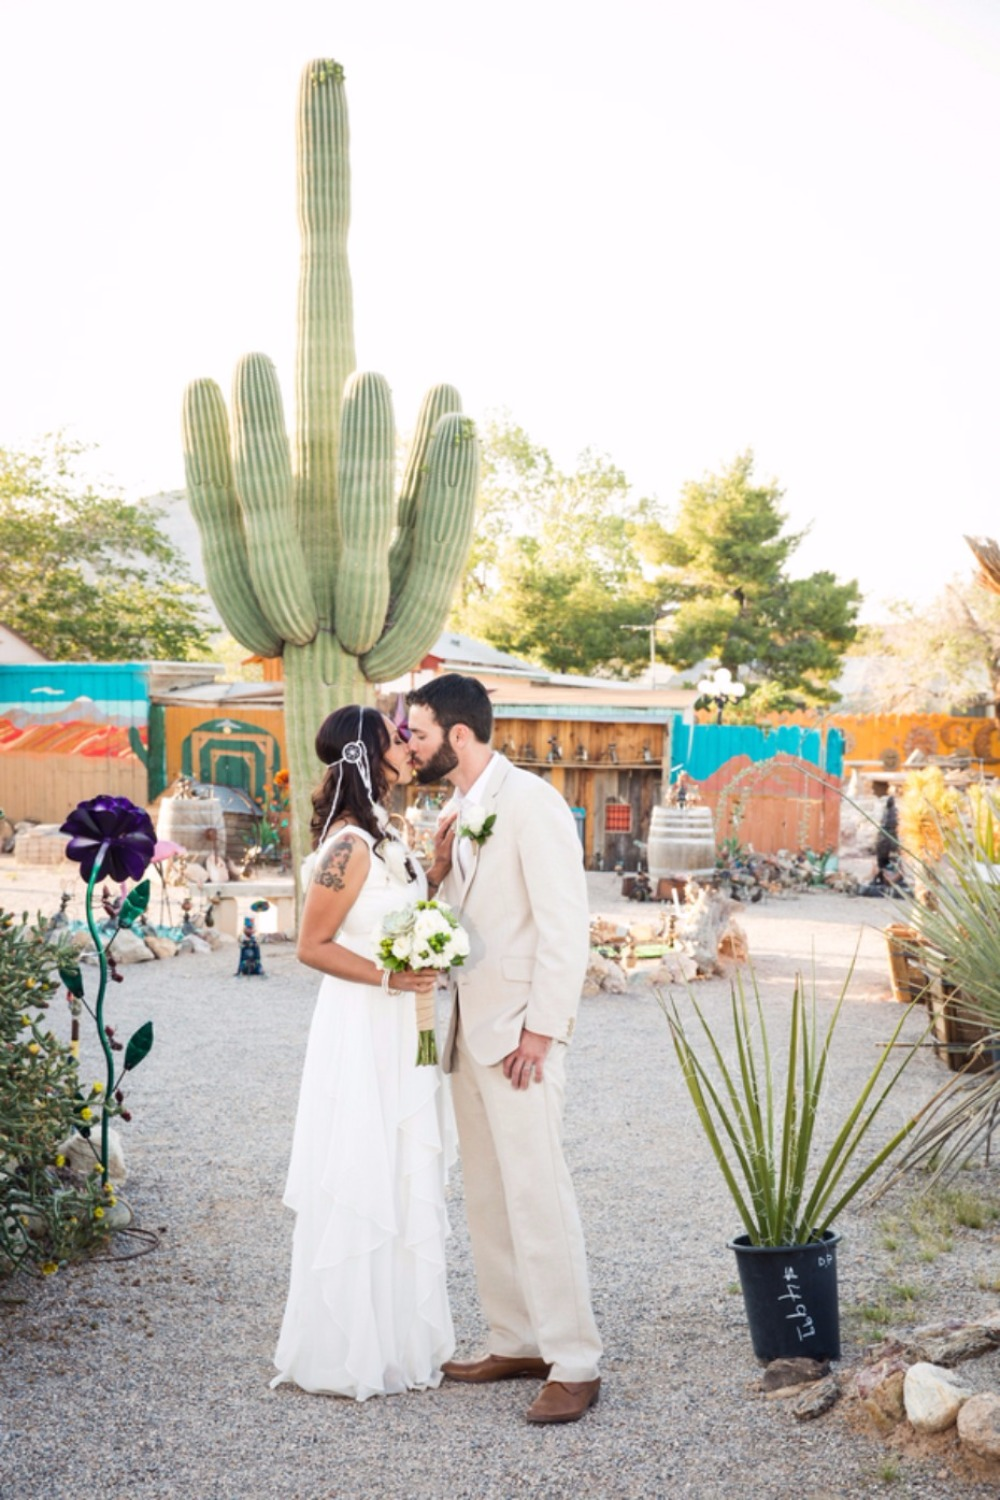 Trending 5 off the beaten path las vegas wedding venues 5 off the beaten path las vegas wedding venues junglespirit Gallery